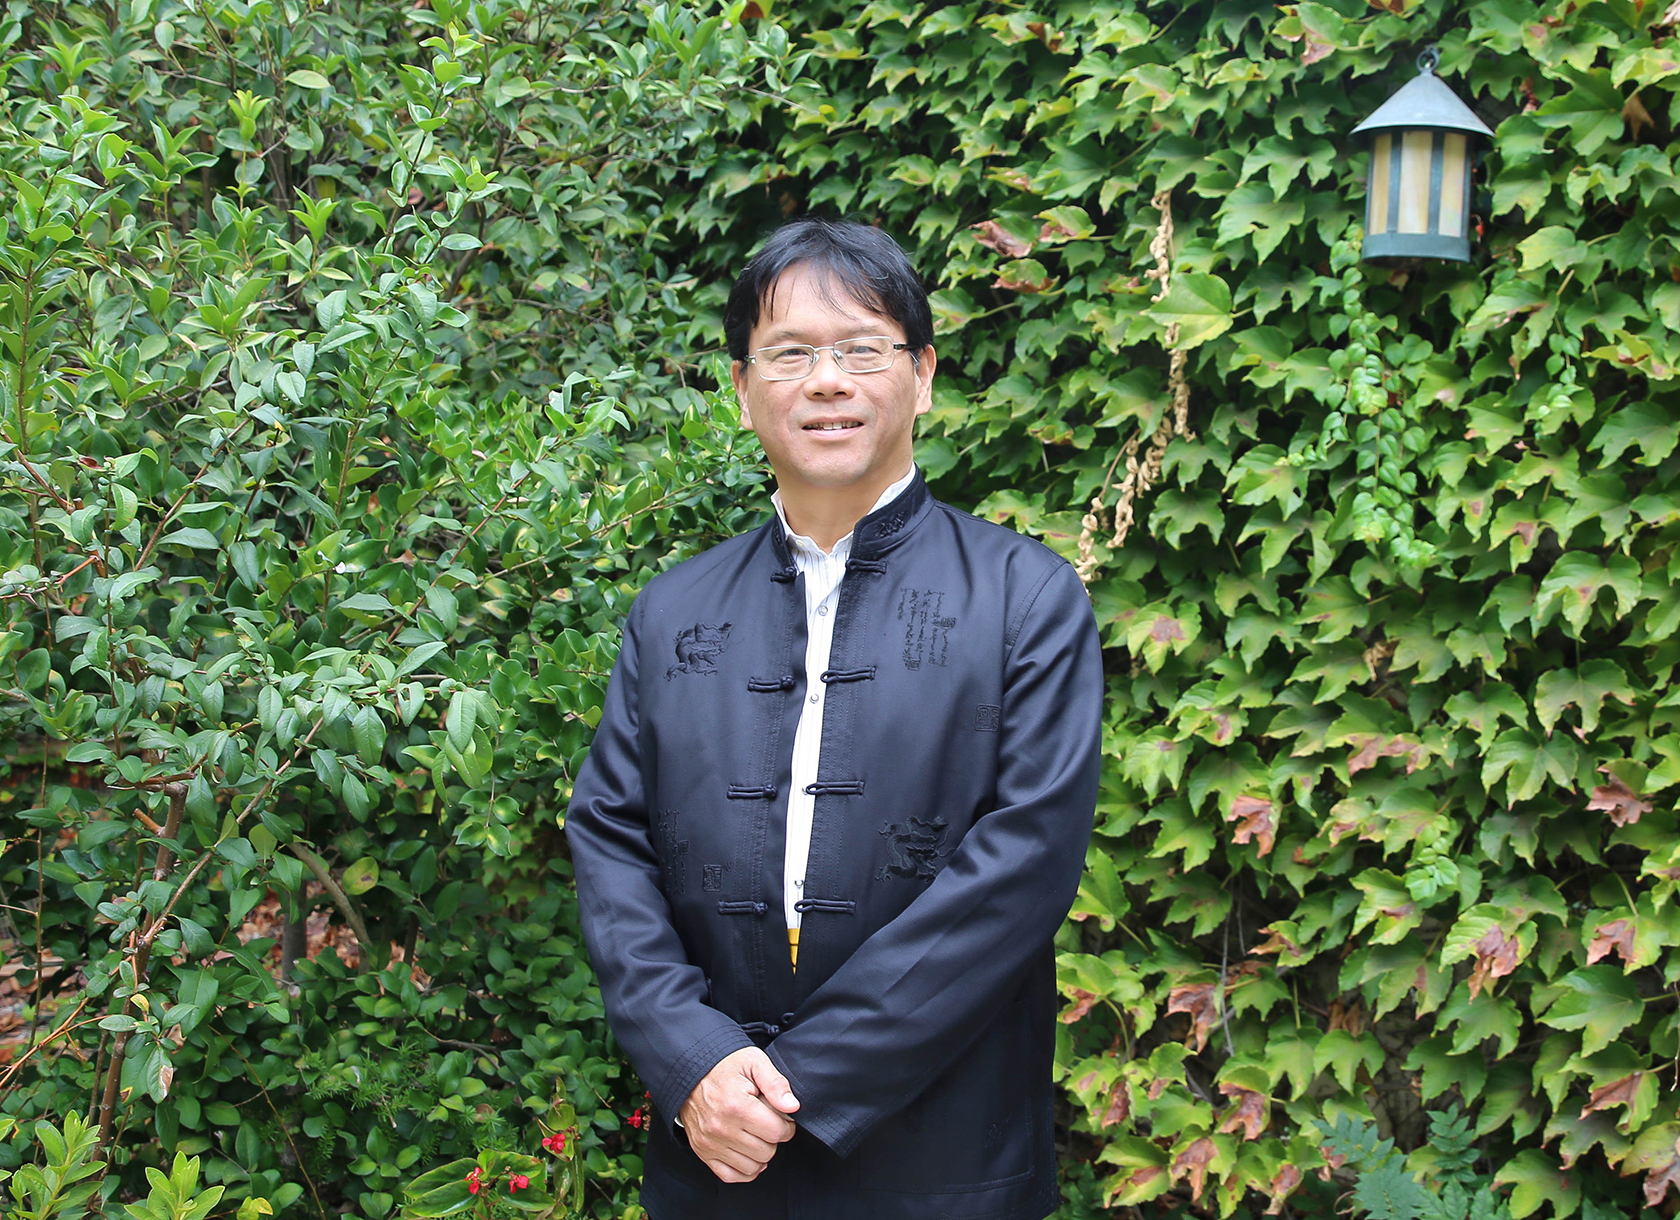 An Asian man with black hair wearing glasses and black traditional clothing.